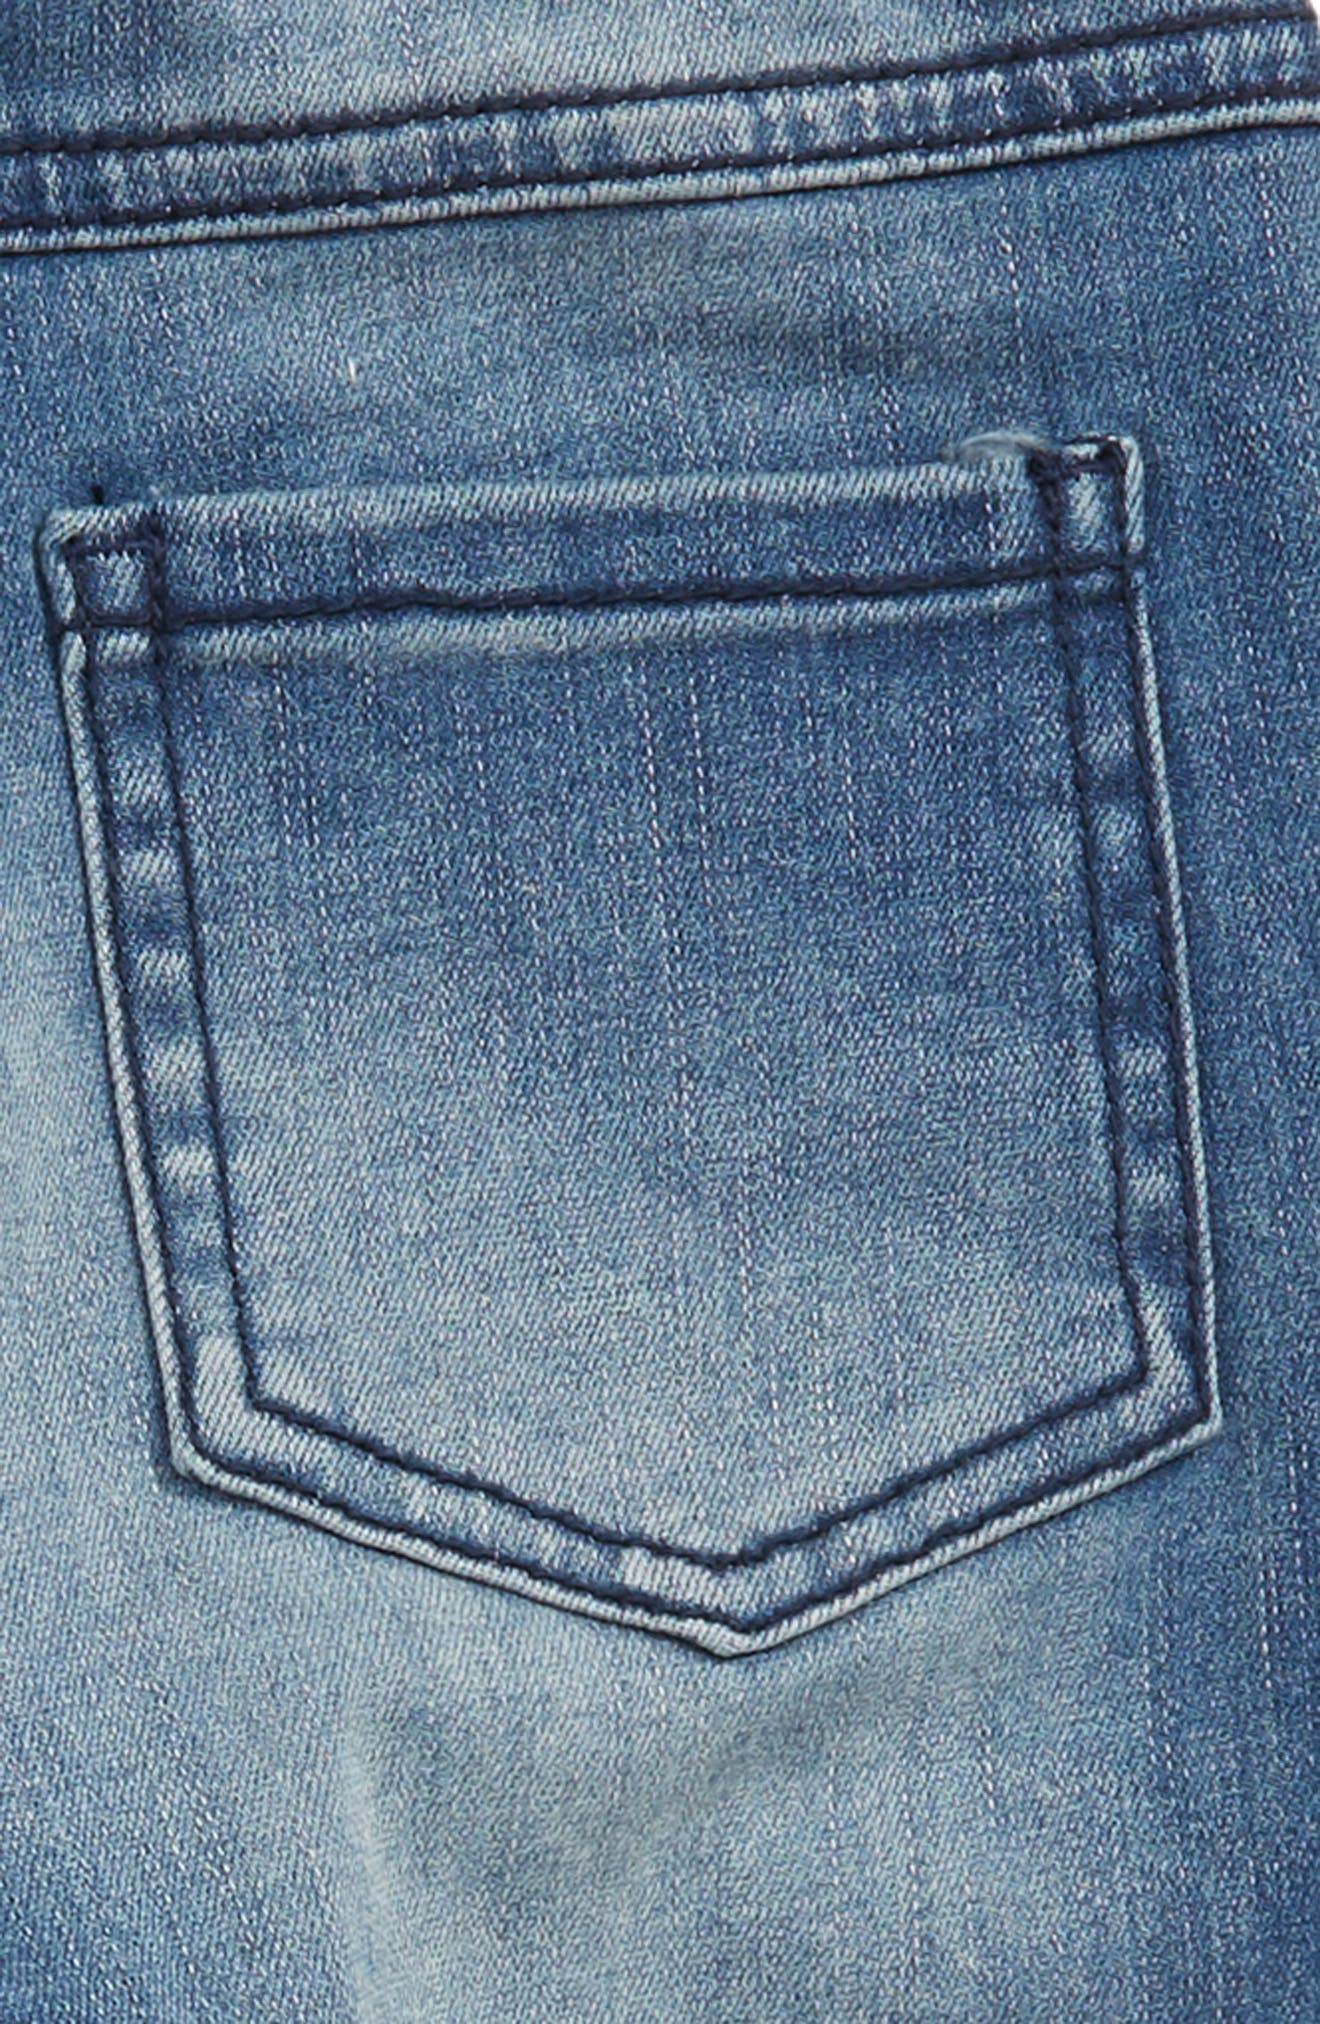 Shadow Patch Jeans,                             Alternate thumbnail 3, color,                             BLUE SHINE WASH